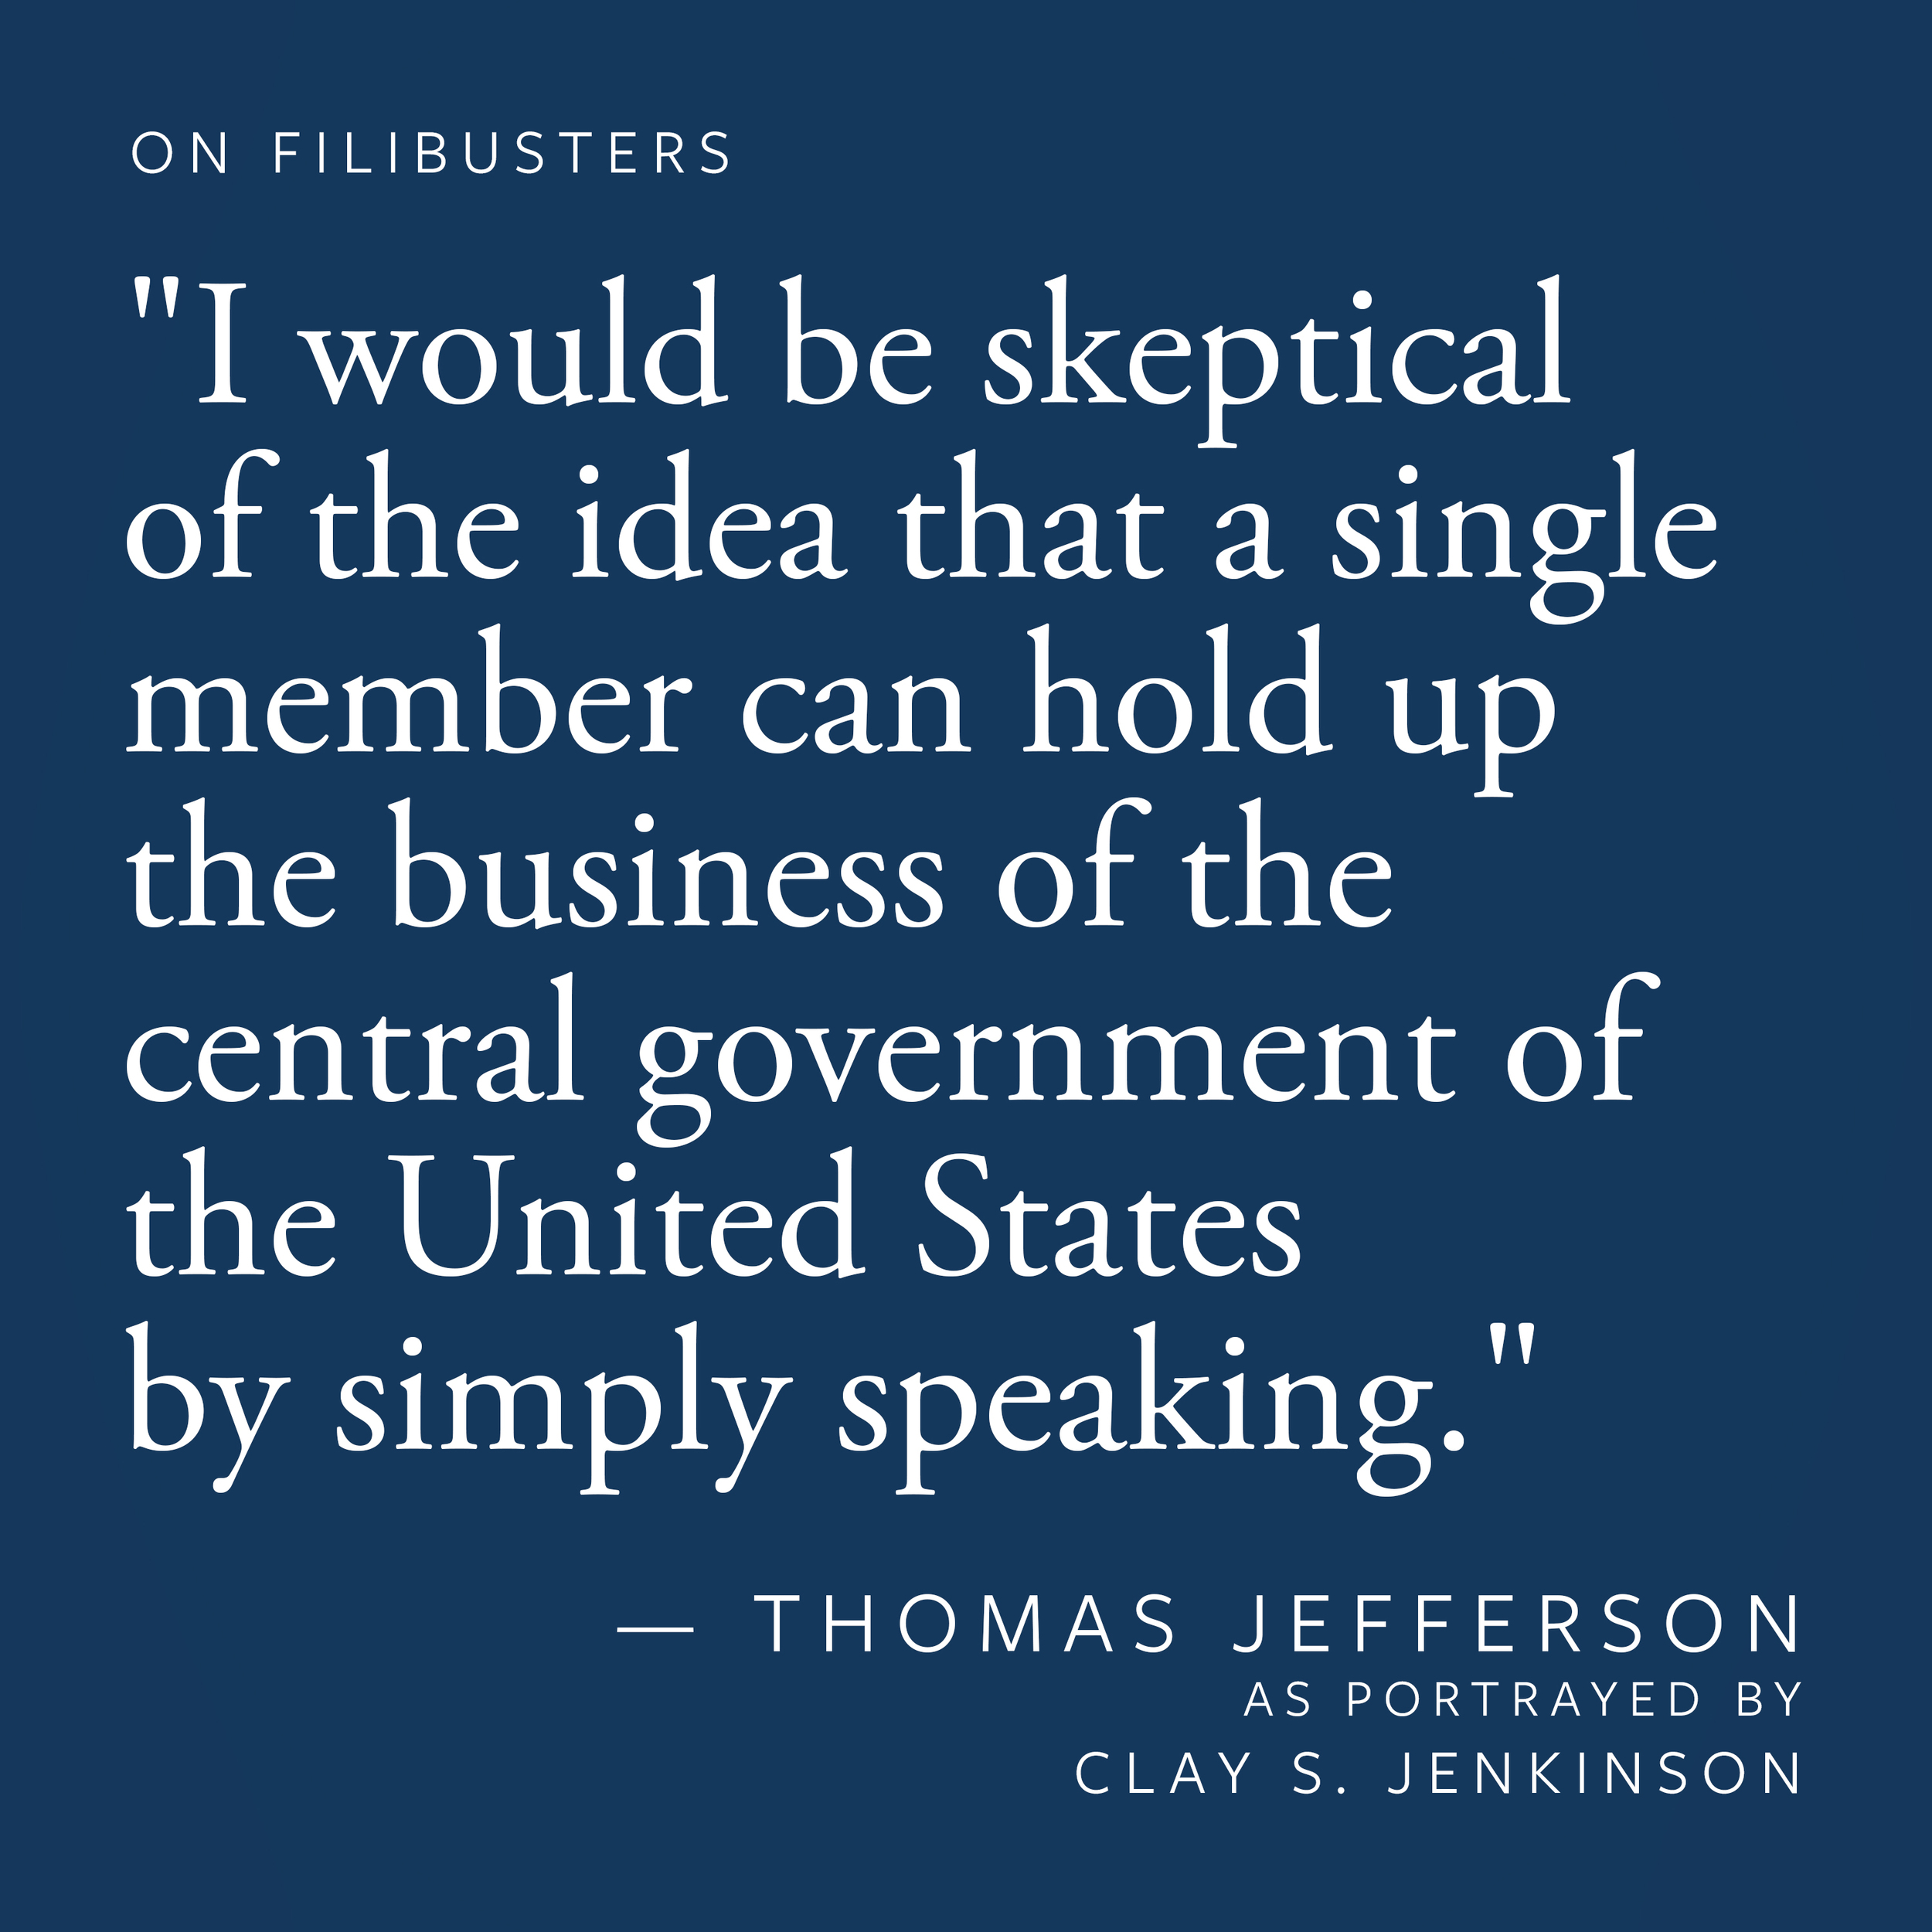 On Filibusters